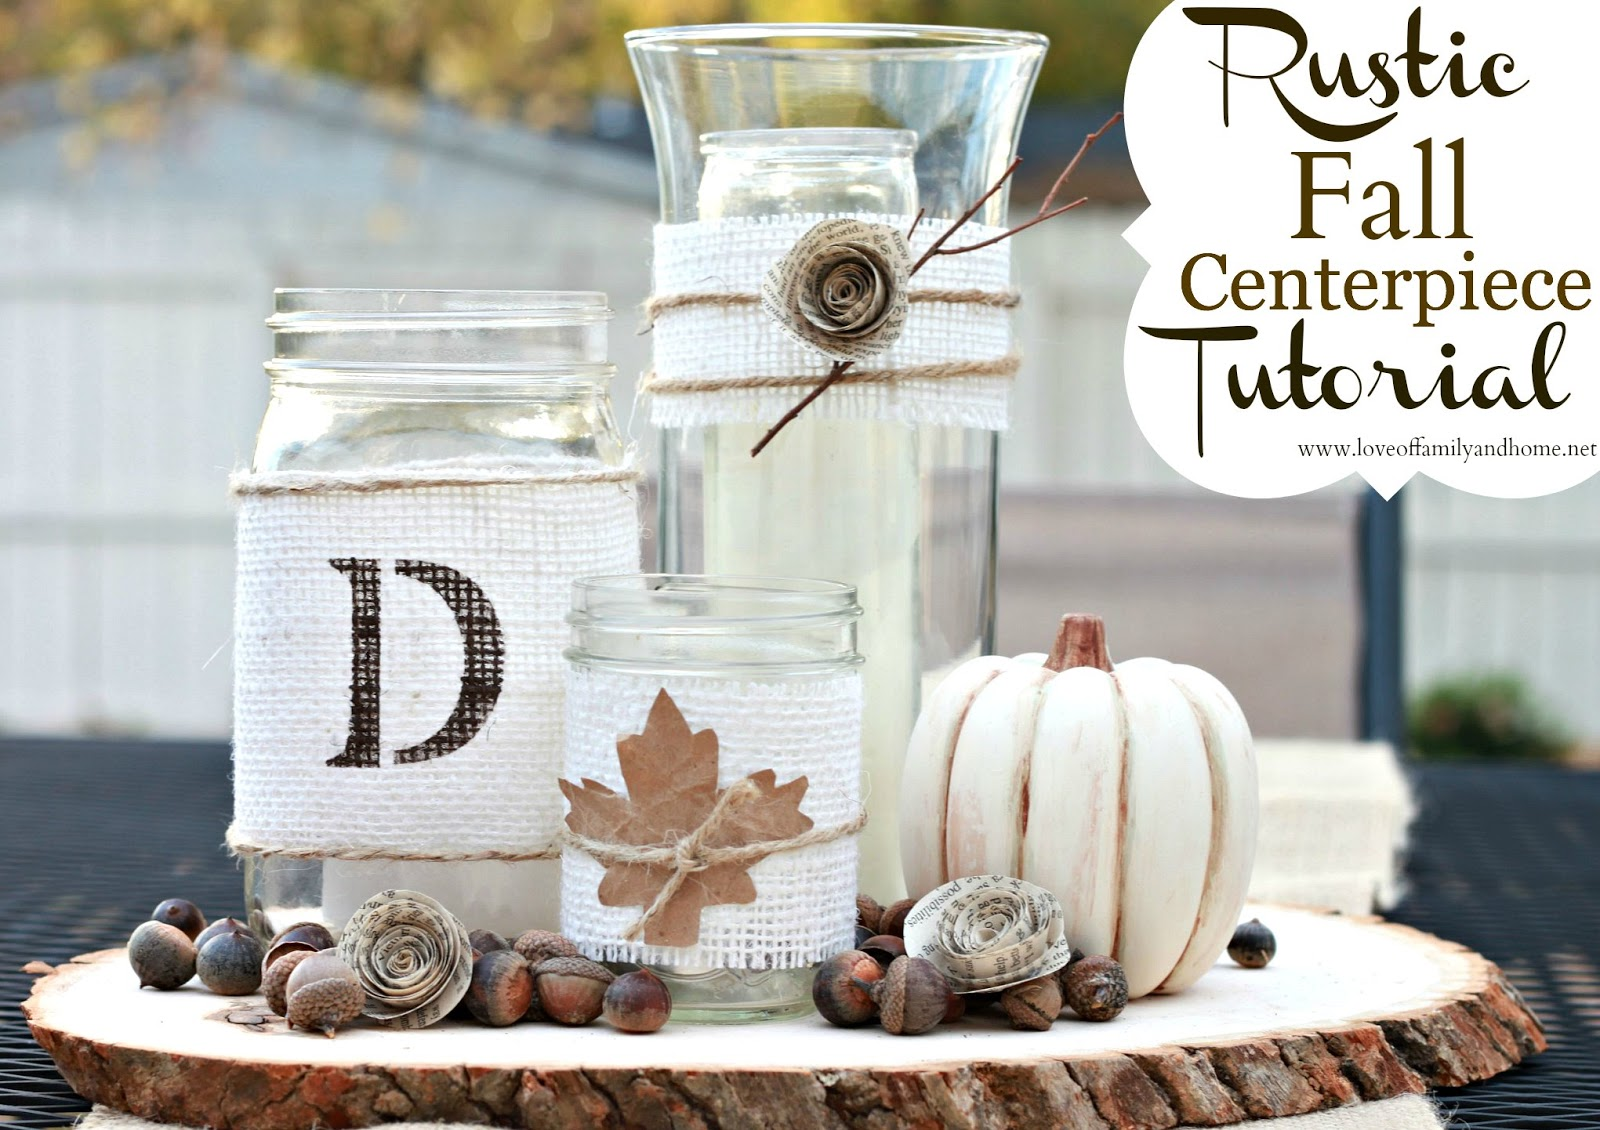 Rustic fall centerpiece tutorial love of family home rustic fall centerpiece tutorial junglespirit Choice Image